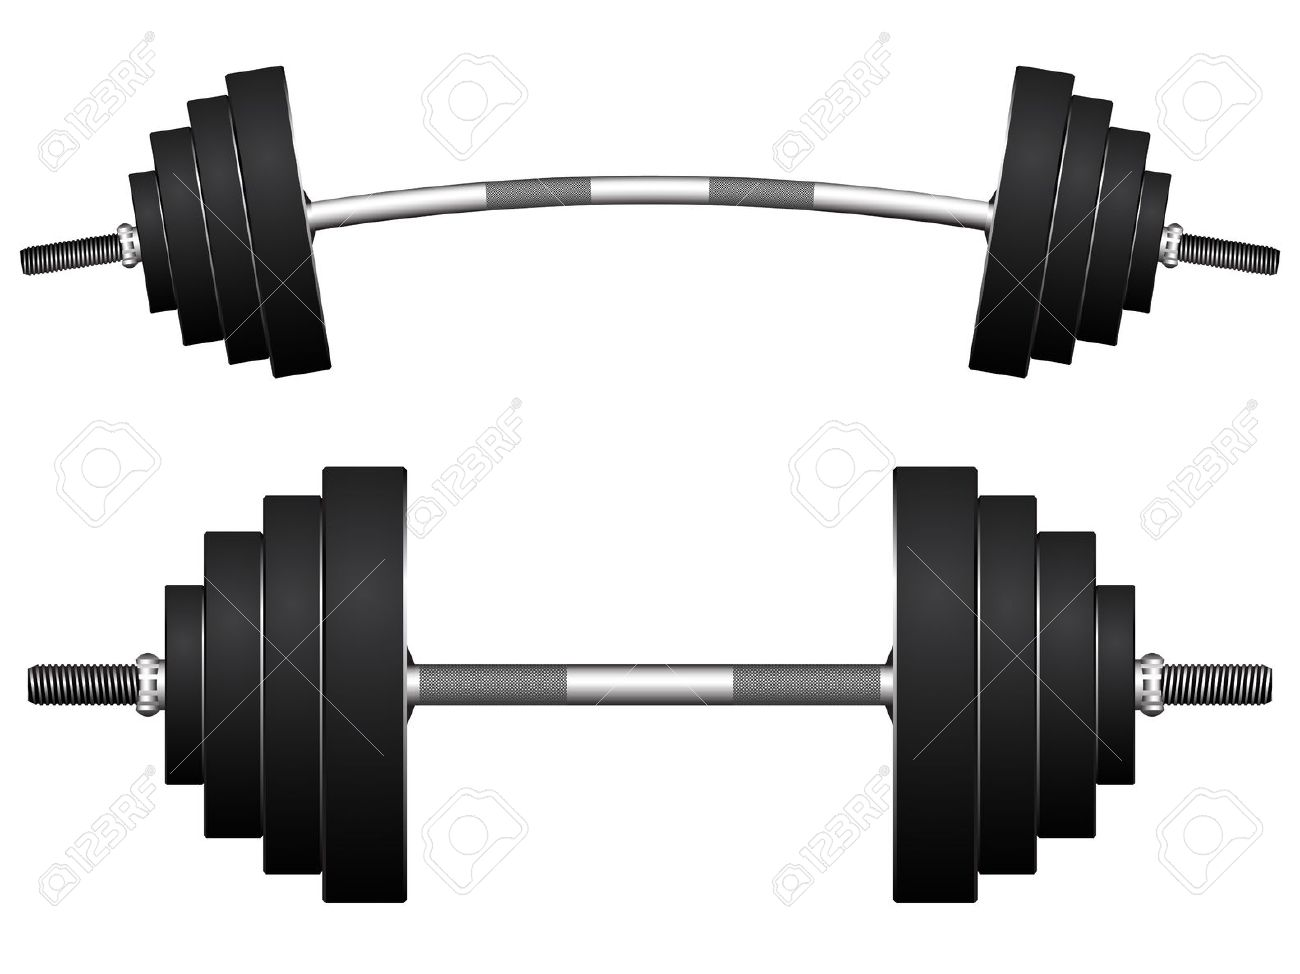 Barbell Clipart. Clip Art. Ourcommunitymedia Free Clip Art Images.